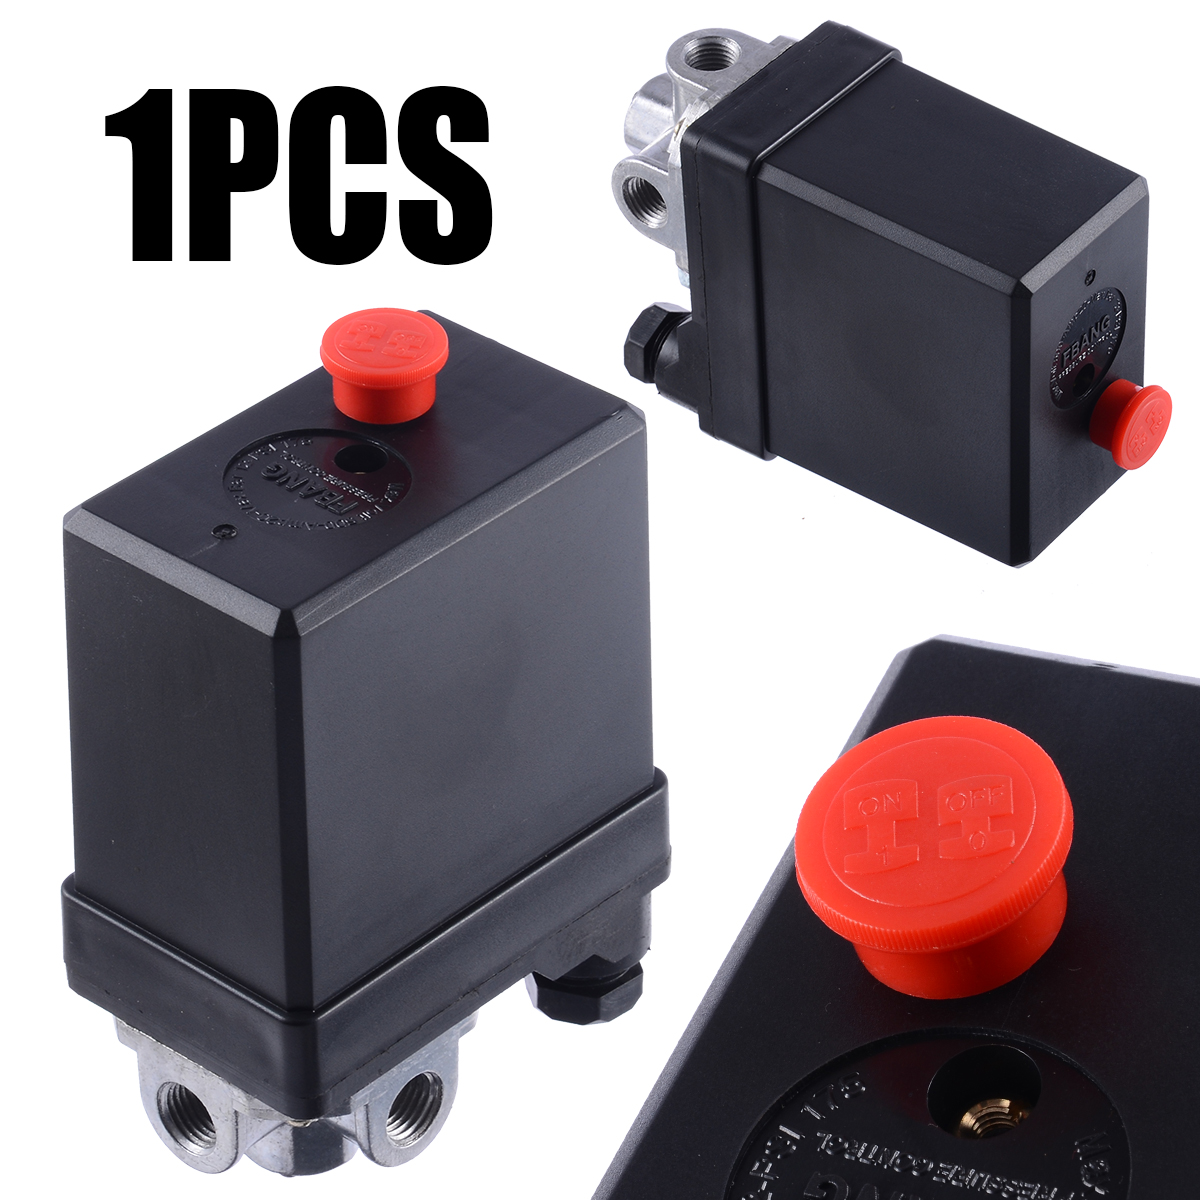 1 Pcs 3-phase Heavy Duty Air Kompressor Druck Switch Control Ventil 380/400 V Kompressor Druck Schalter teil